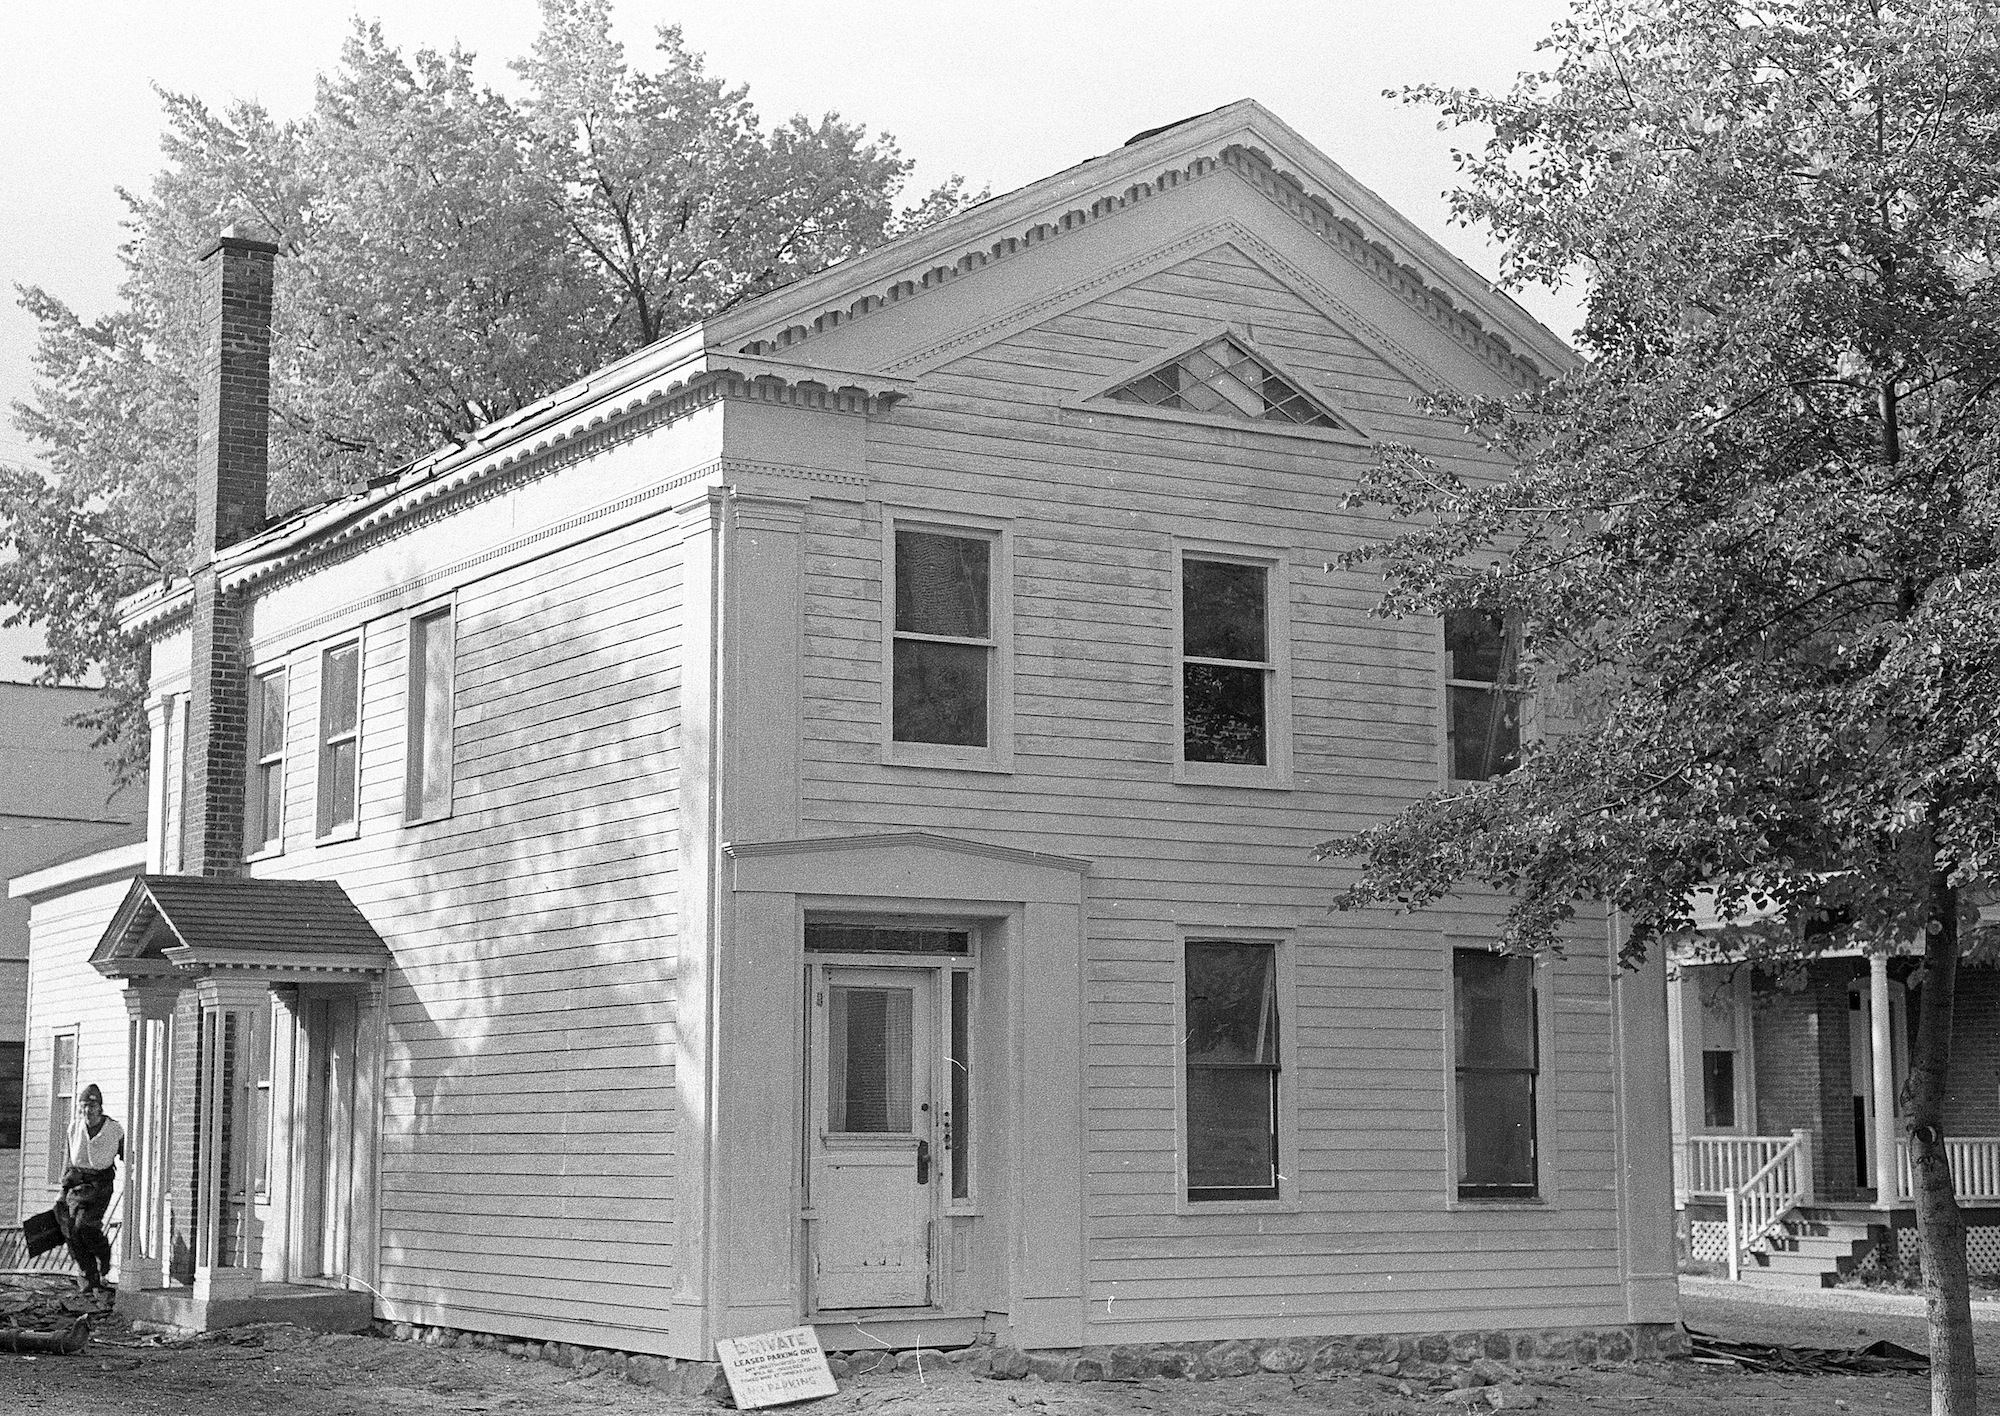 pre-Civil War parsonage image